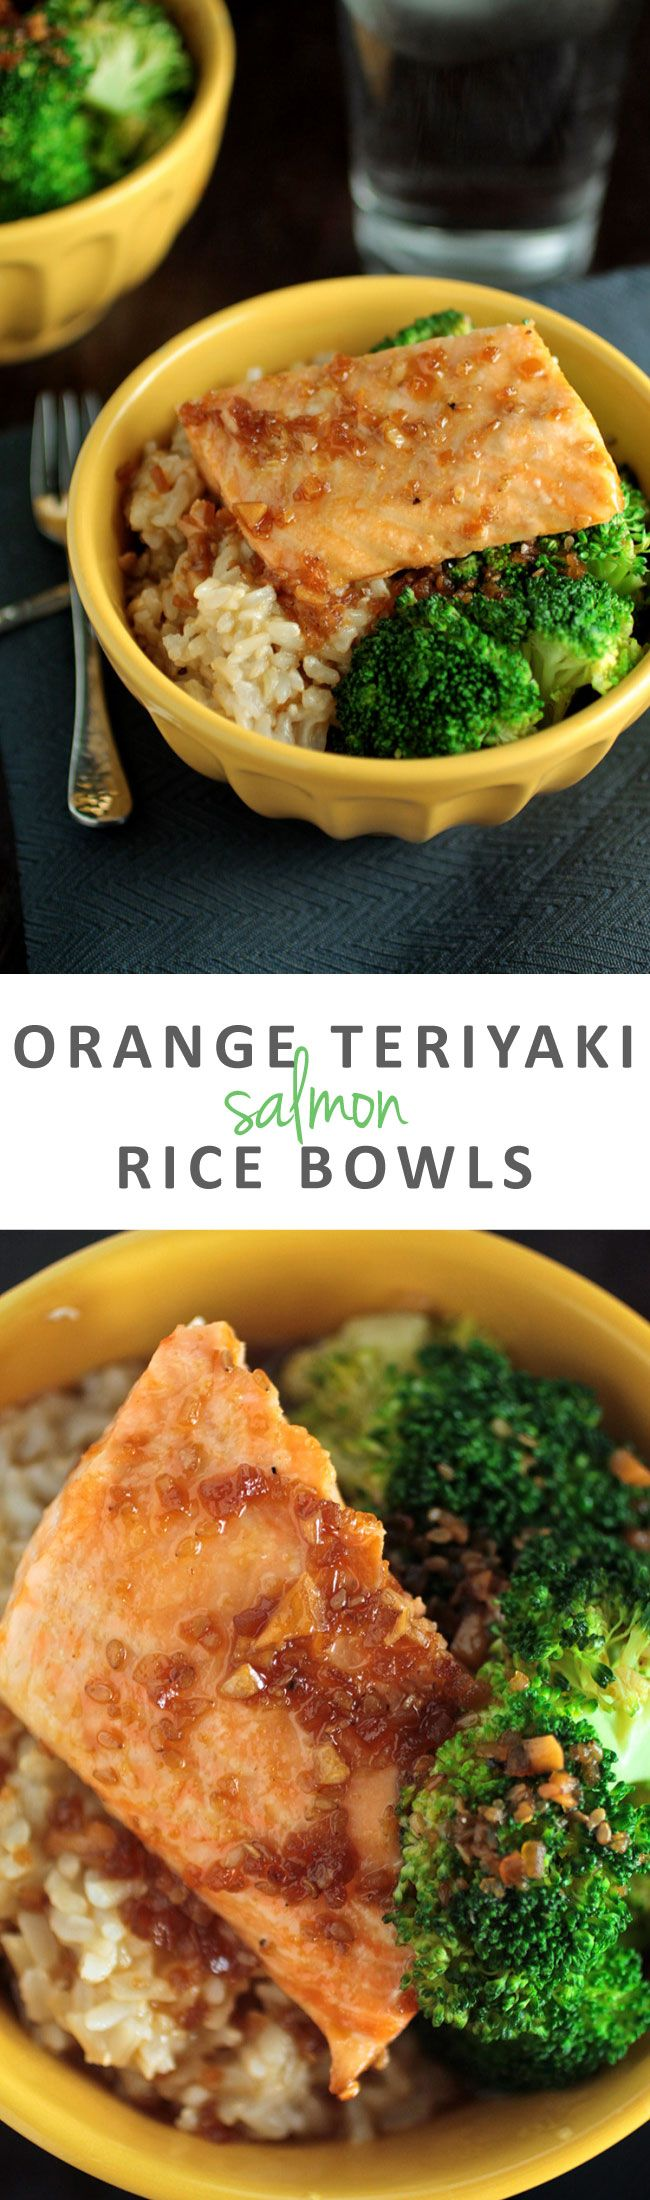 Orange Teriyaki Salmon Rice Bowls   This easy, healthy recipe will help you have dinner on the table in no time! Delicious salmon and fresh vegetables come together for a simple, quick weeknight meal.